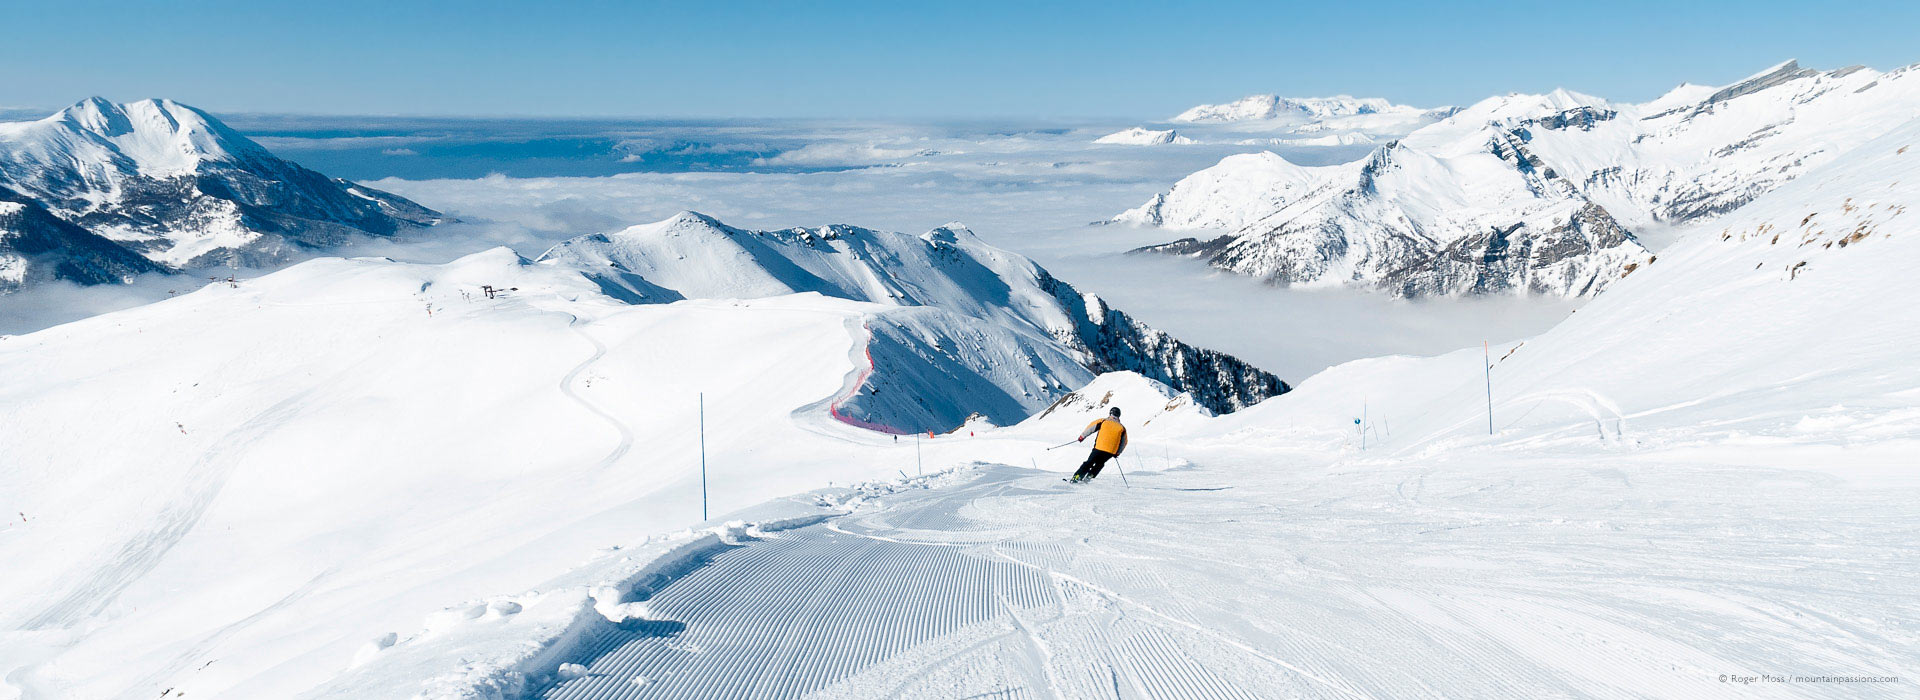 View of skier on wide piste above the clouds at Orcierès 1850.